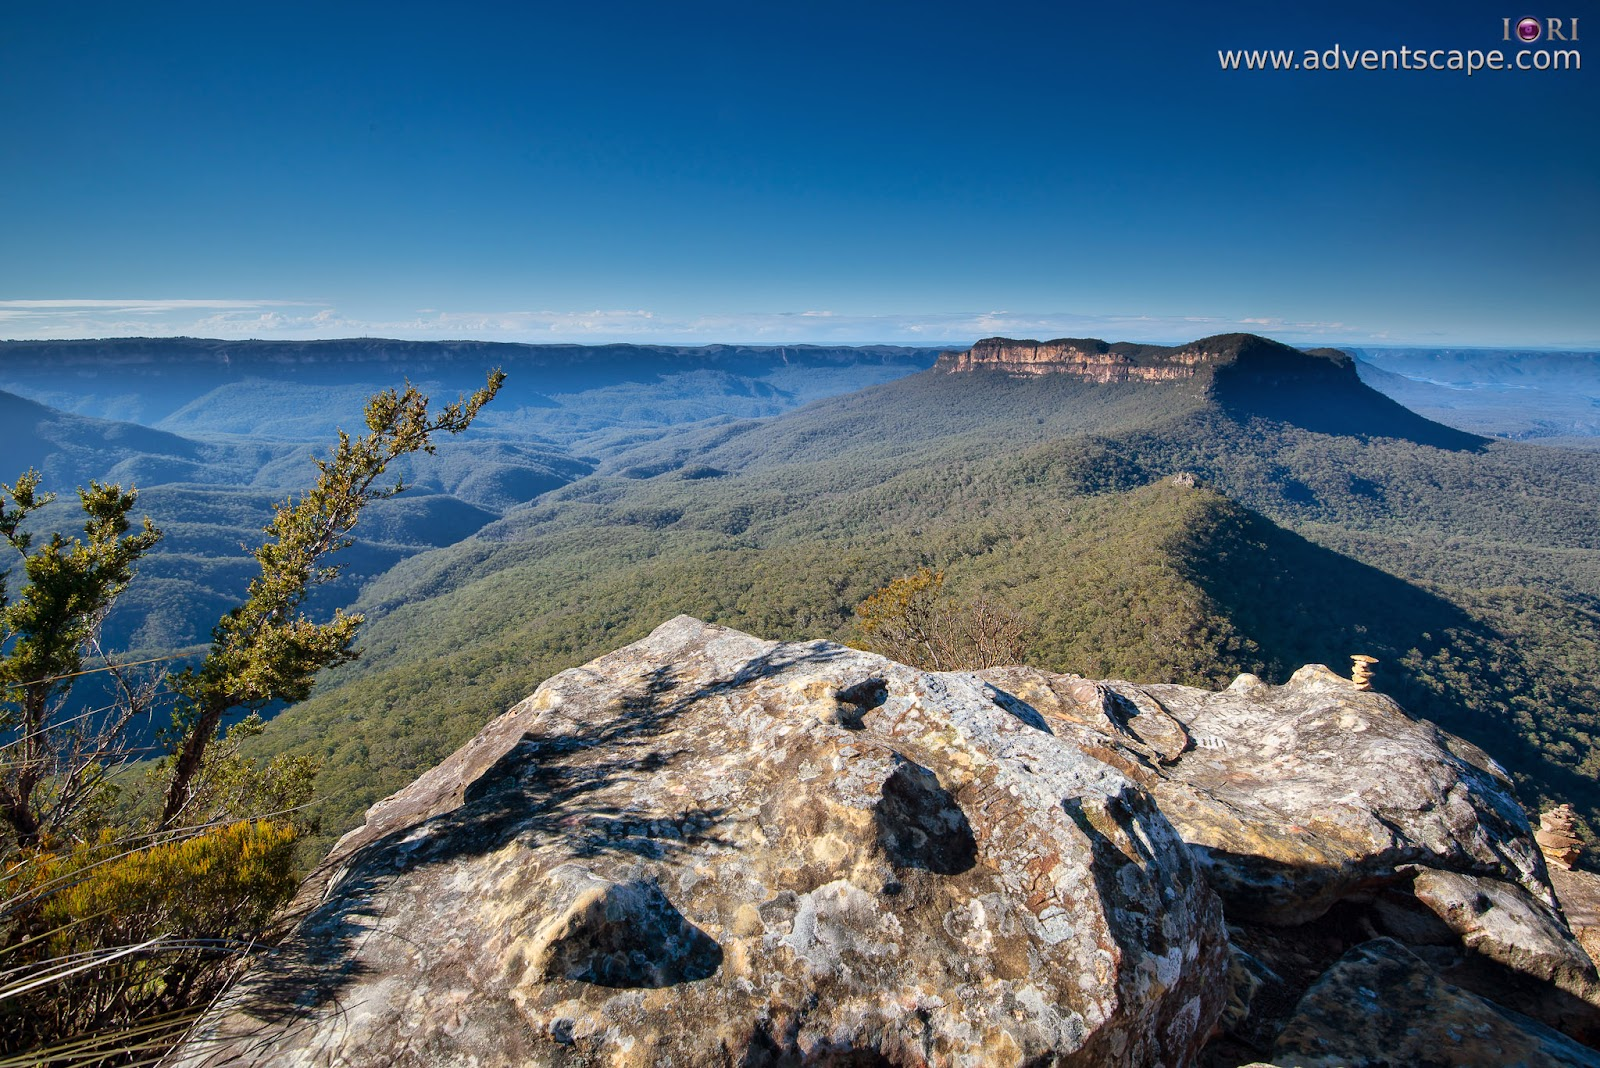 2780, Australia, Australian Landscape Photographer, blogger, Blue Mountain, bushwalk, Castle Head, gate, Glenraphael, Katoomba, lookout, Narrow Neck, New South Wales, NSW, Philip Avellana, sunrise, plants